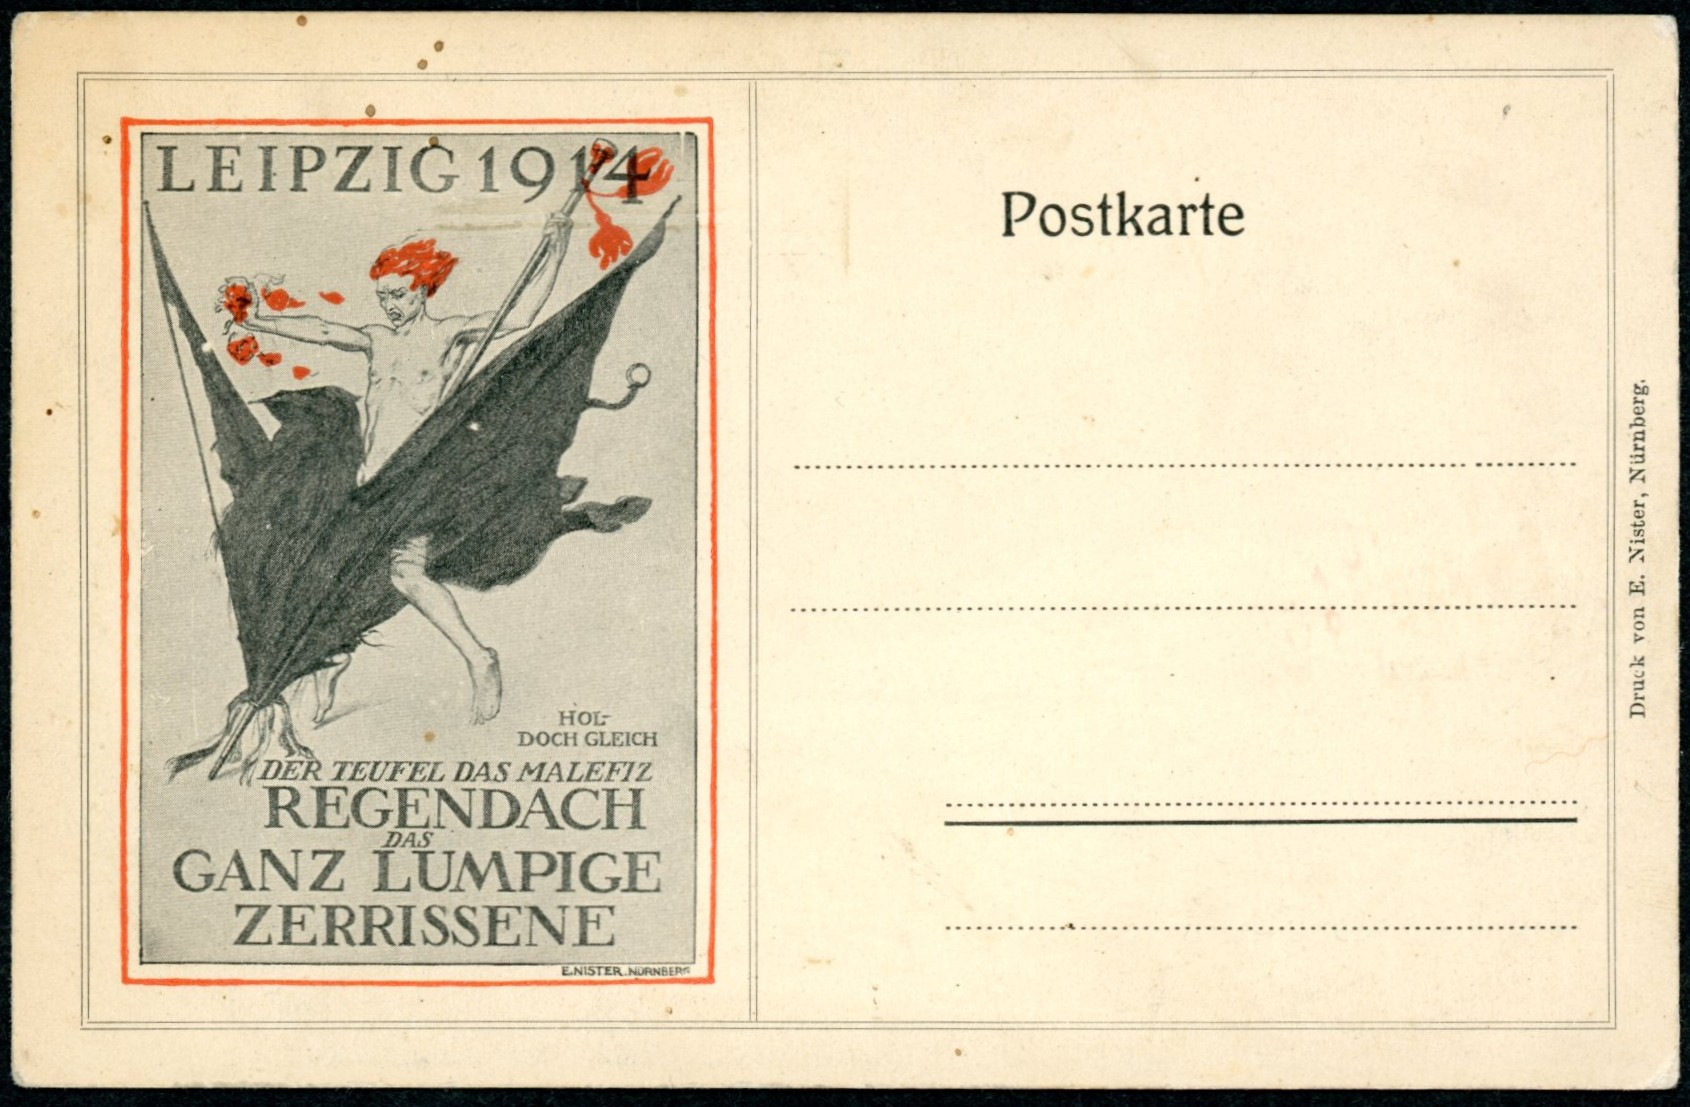 POSTER STAMPS AND POSTCARDS OF THE BUGRA - LEIPZIG, 1914